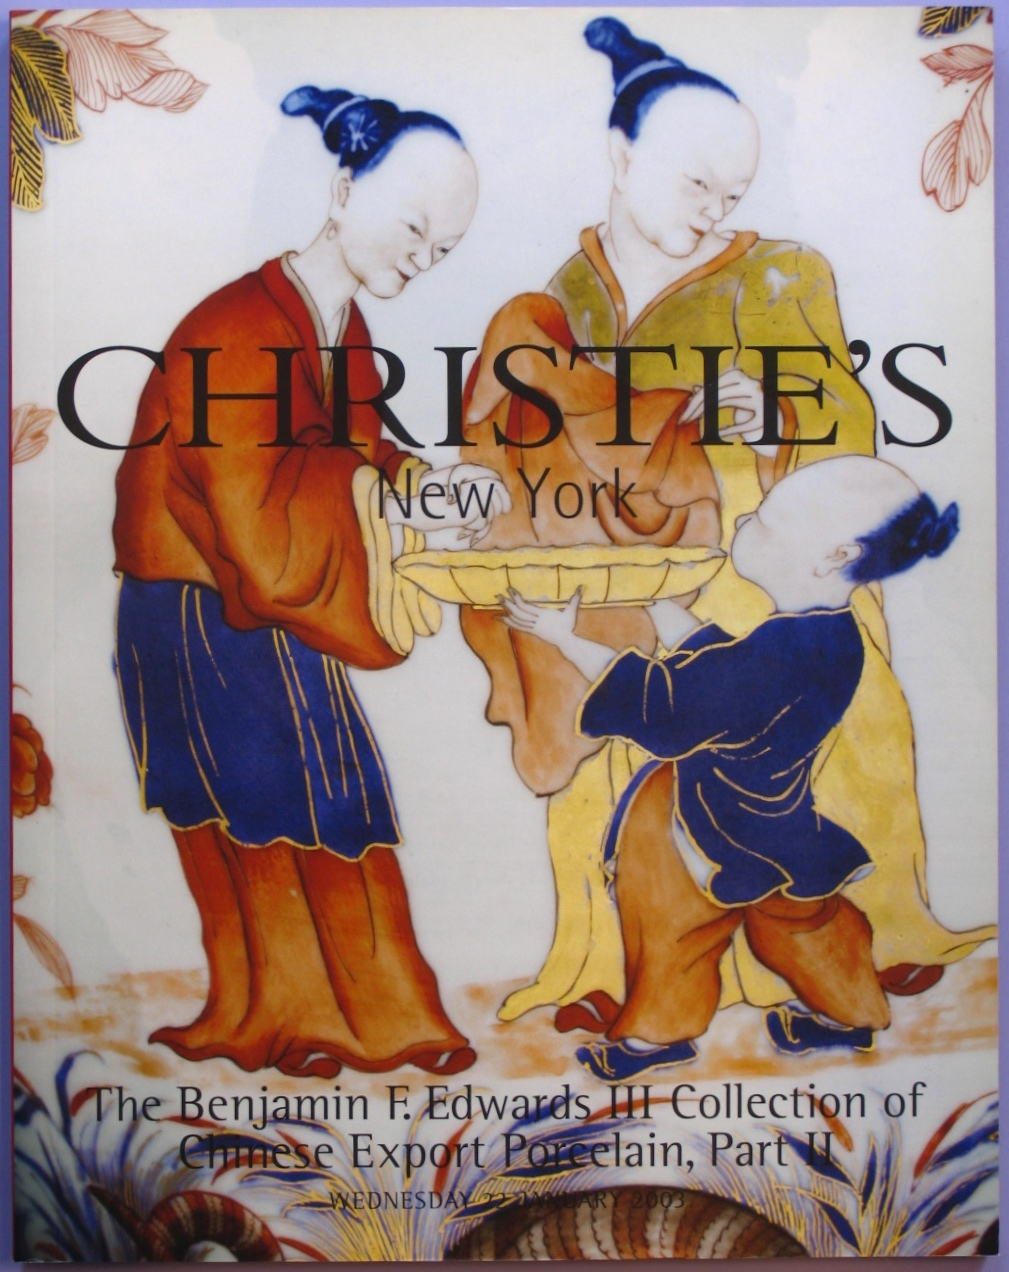 CNY20030122: Bookshop: [2003] Christie's The Benjamin F. Edwards Iii Collection of Chinese Export Porcelain, Part ii